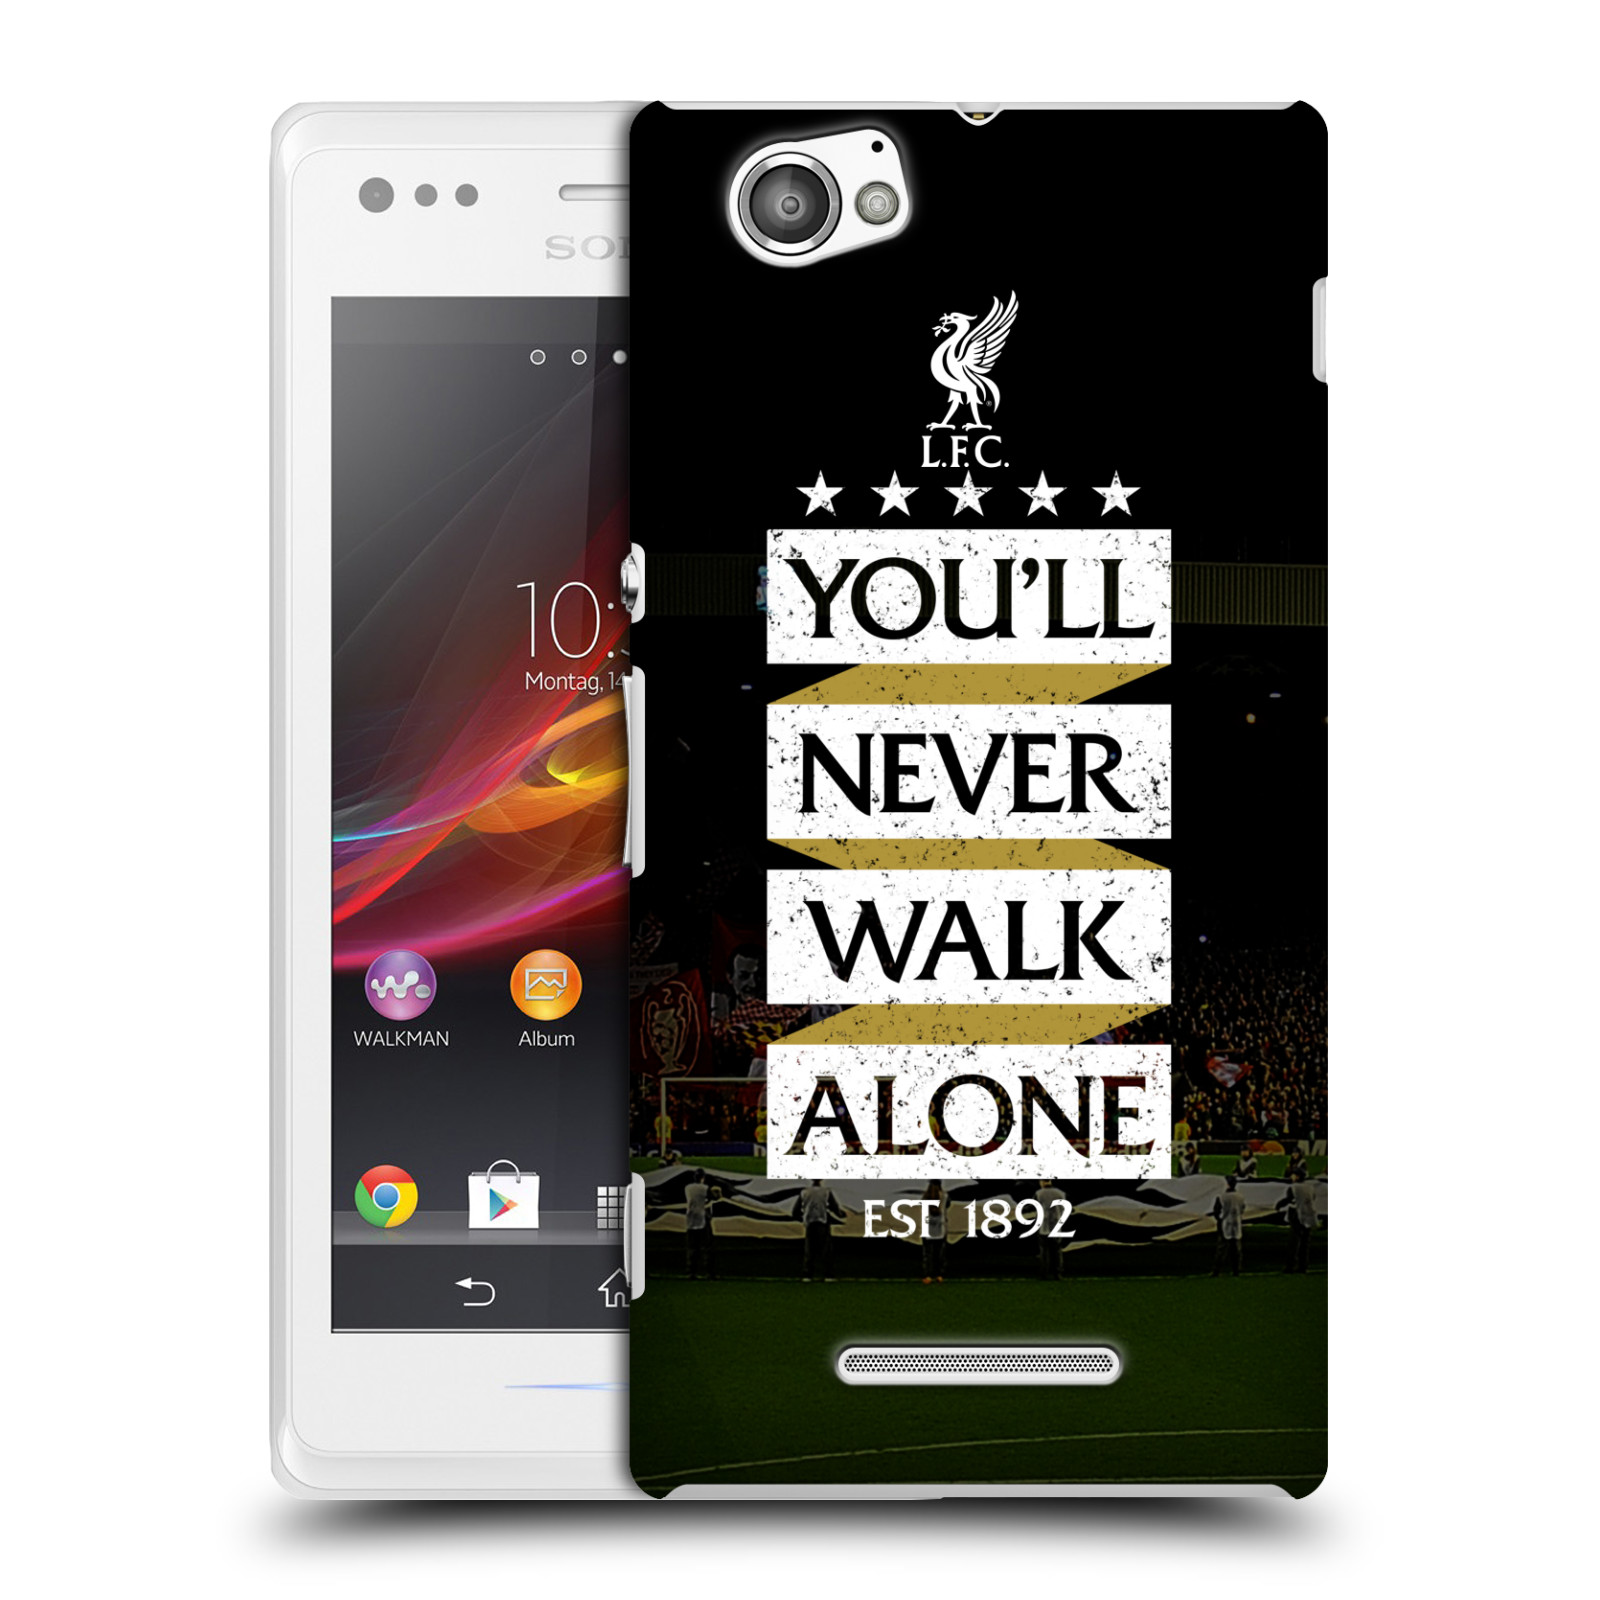 Plastové pouzdro na mobil Sony Xperia M C1905 HEAD CASE LFC You'll Never Walk Alone